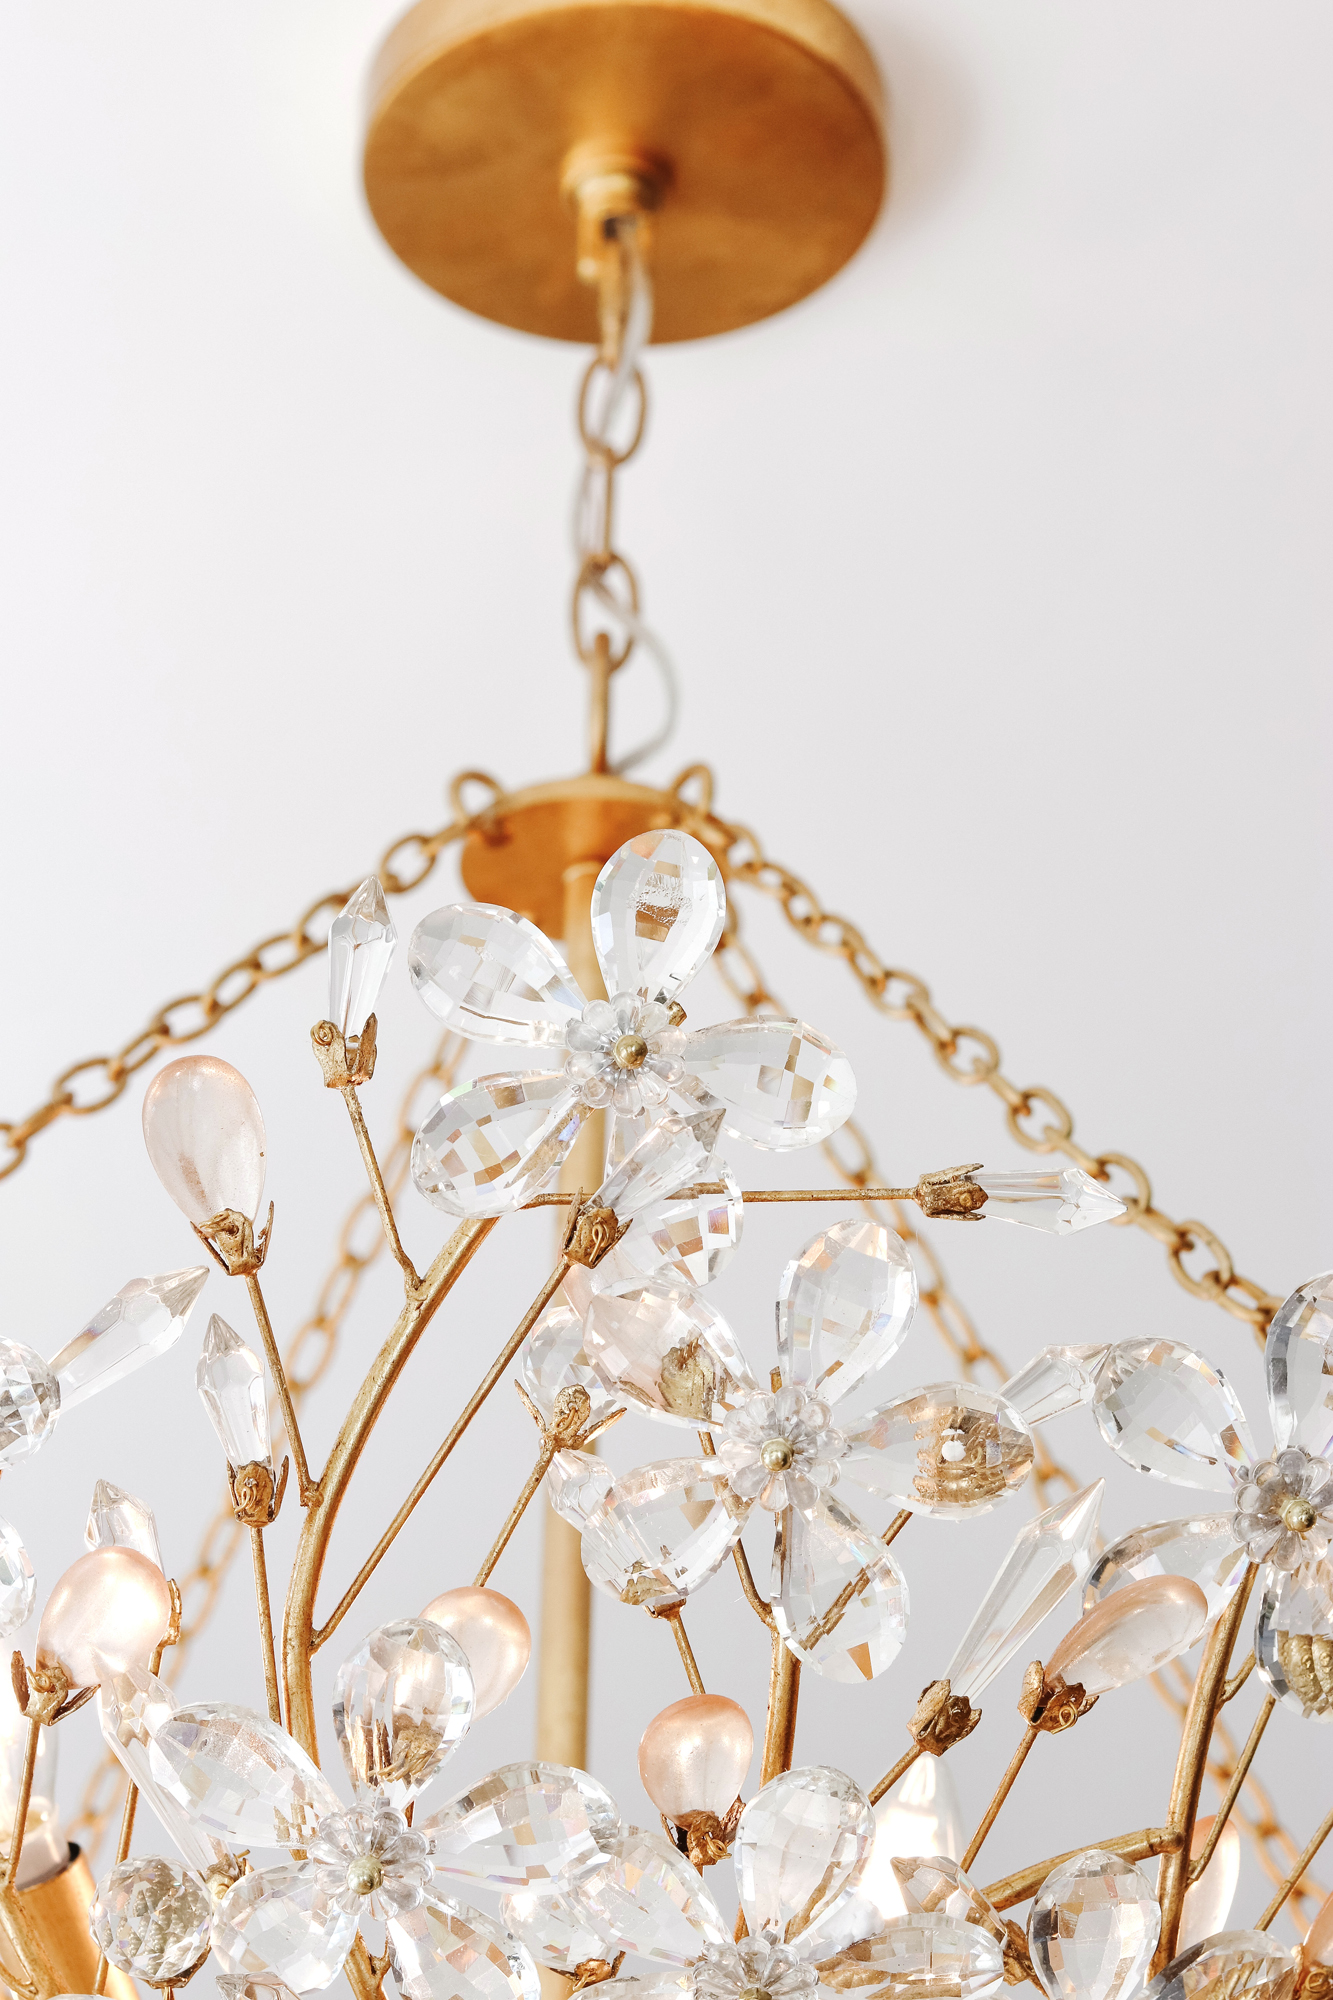 Chandelier Kathy Kuo Home